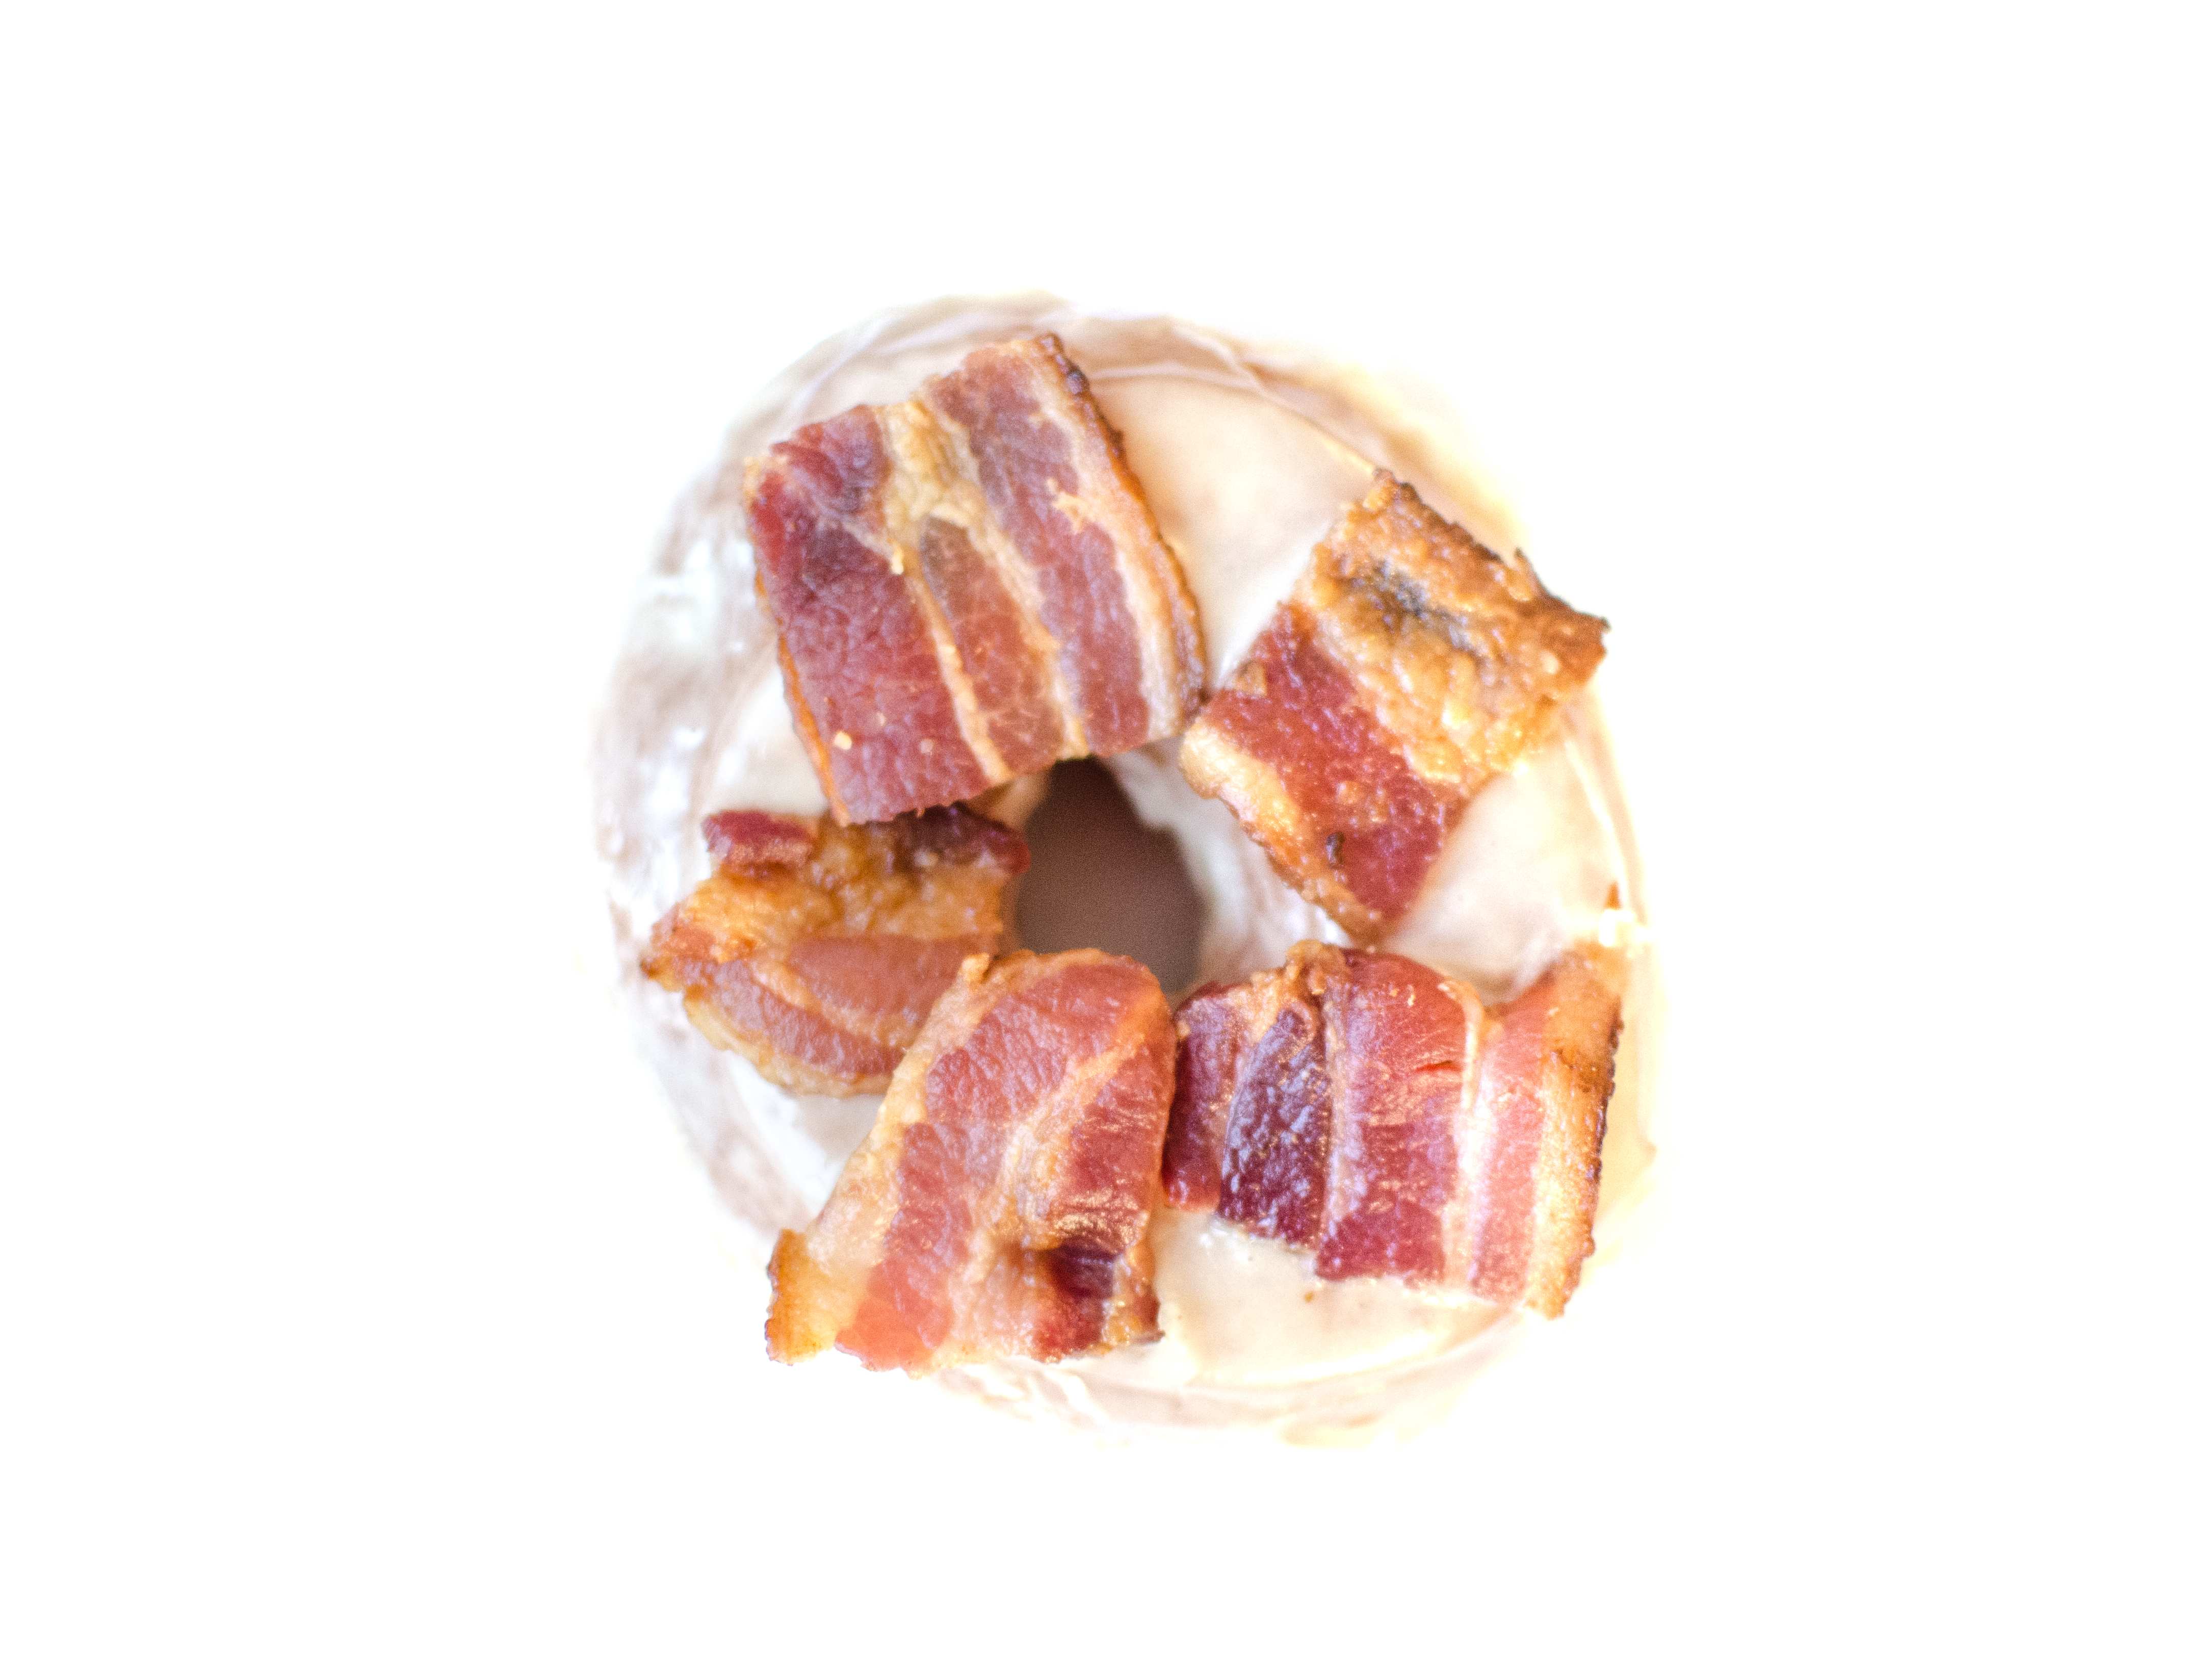 Maple bacon doughnut from Union Square Donuts